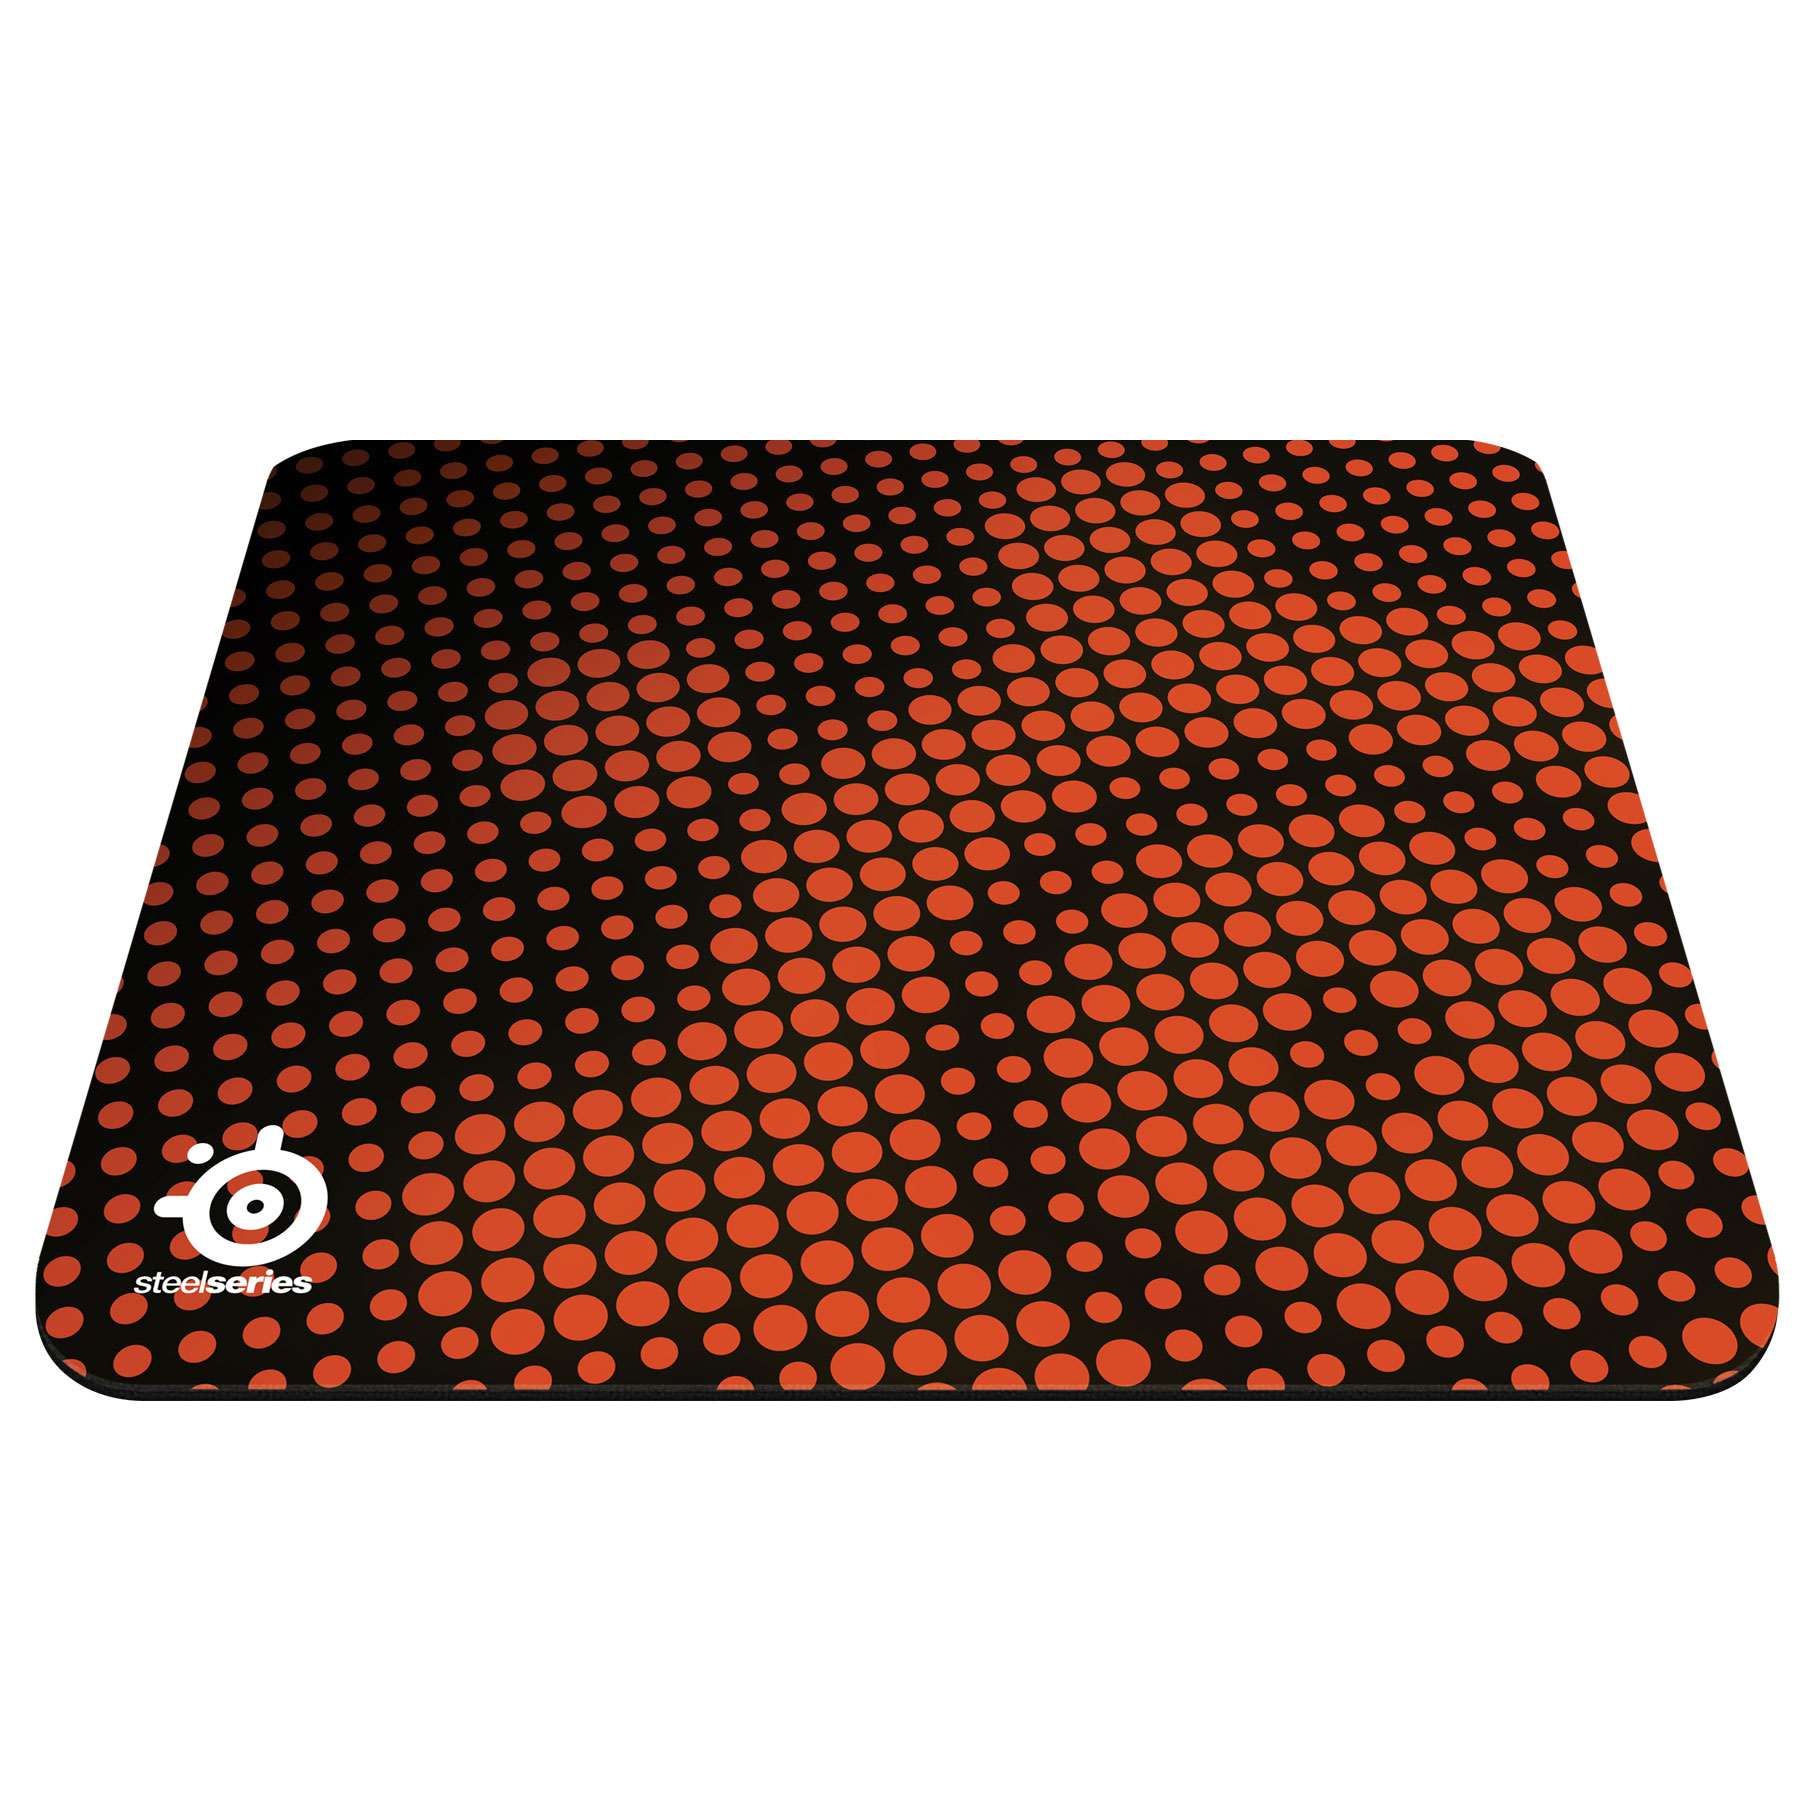 Steelseries qck edition limit e heat orange tapis de souris steelseries sur - Steelseries tapis de souris ...